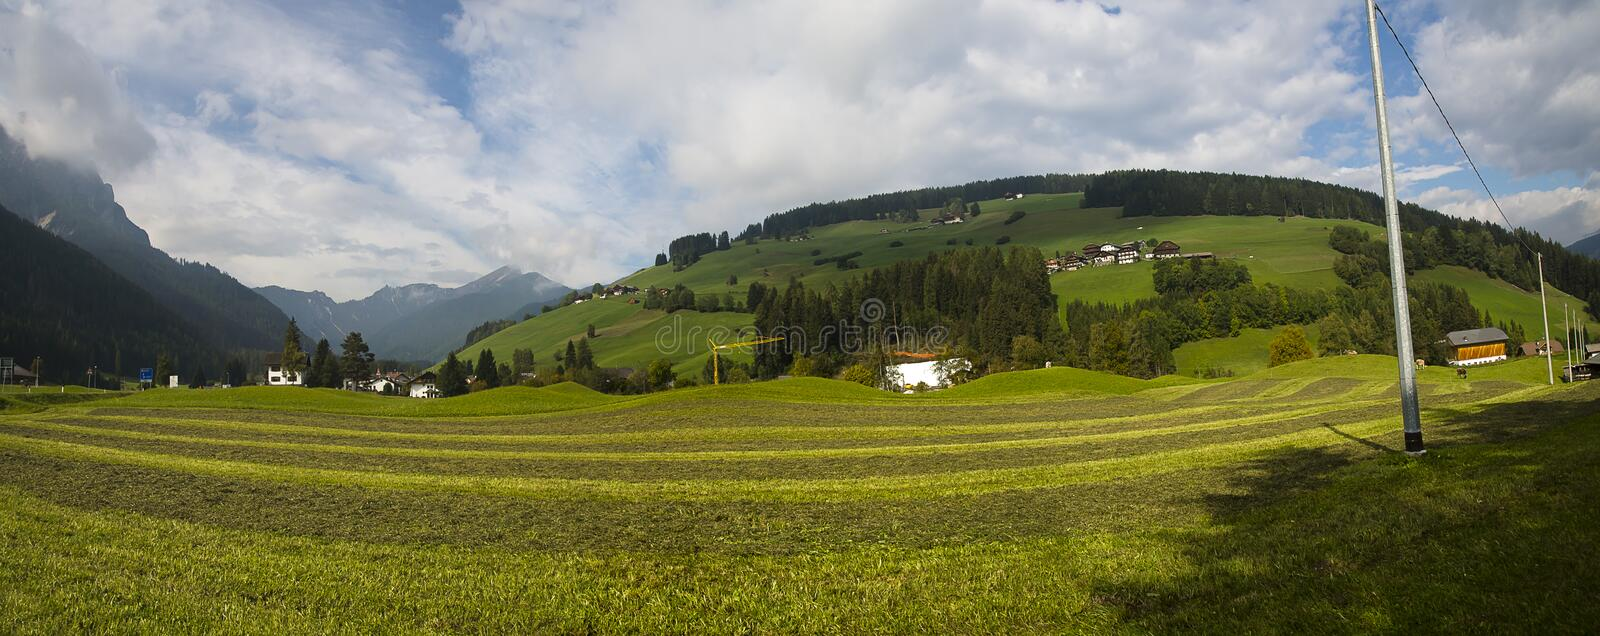 Country side panoramic scene, Italy stock photo